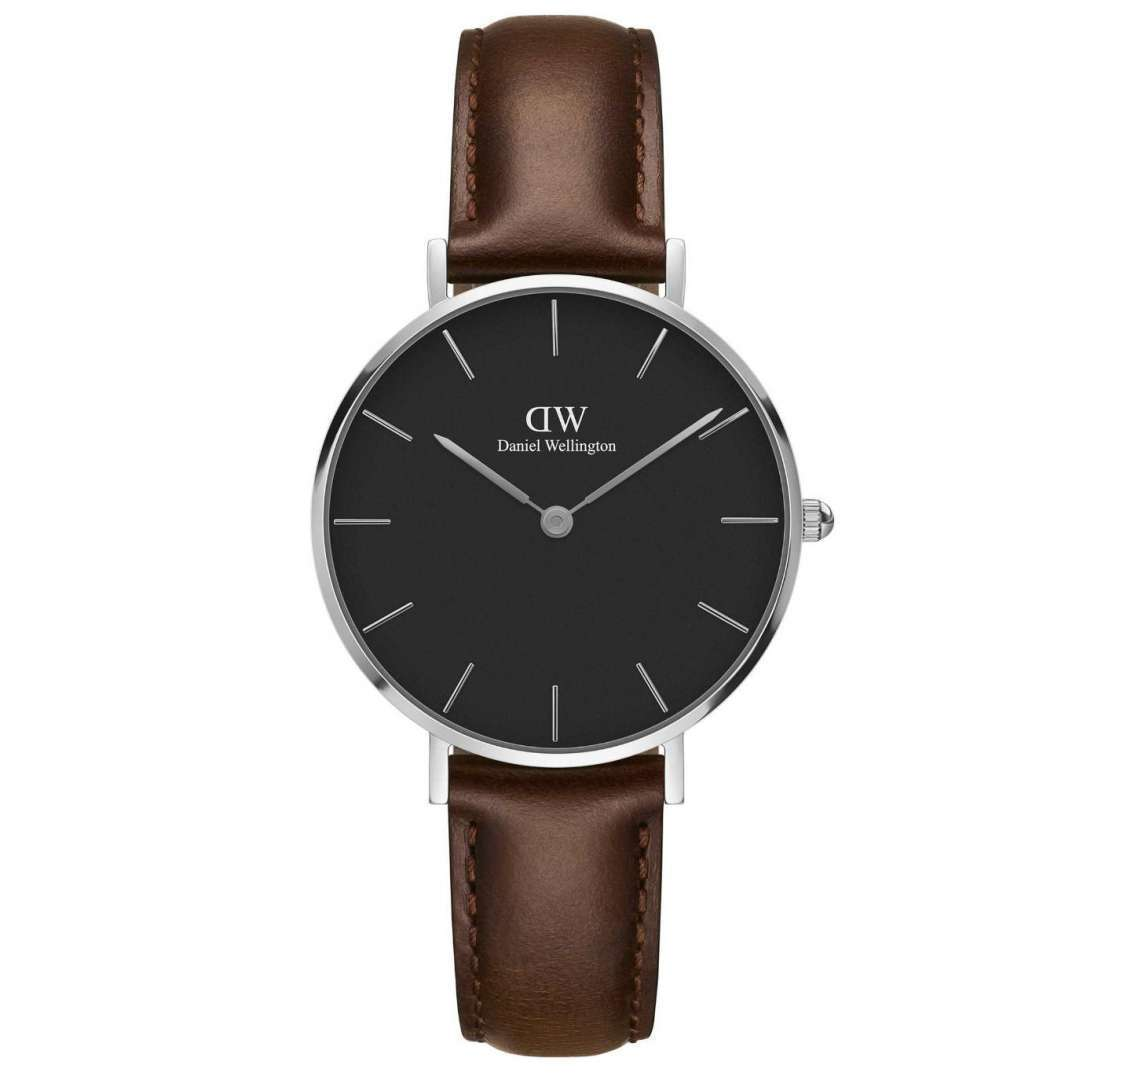 שעון יד אנלוגי daniel wellington DW00100177 דניאל וולינגטון